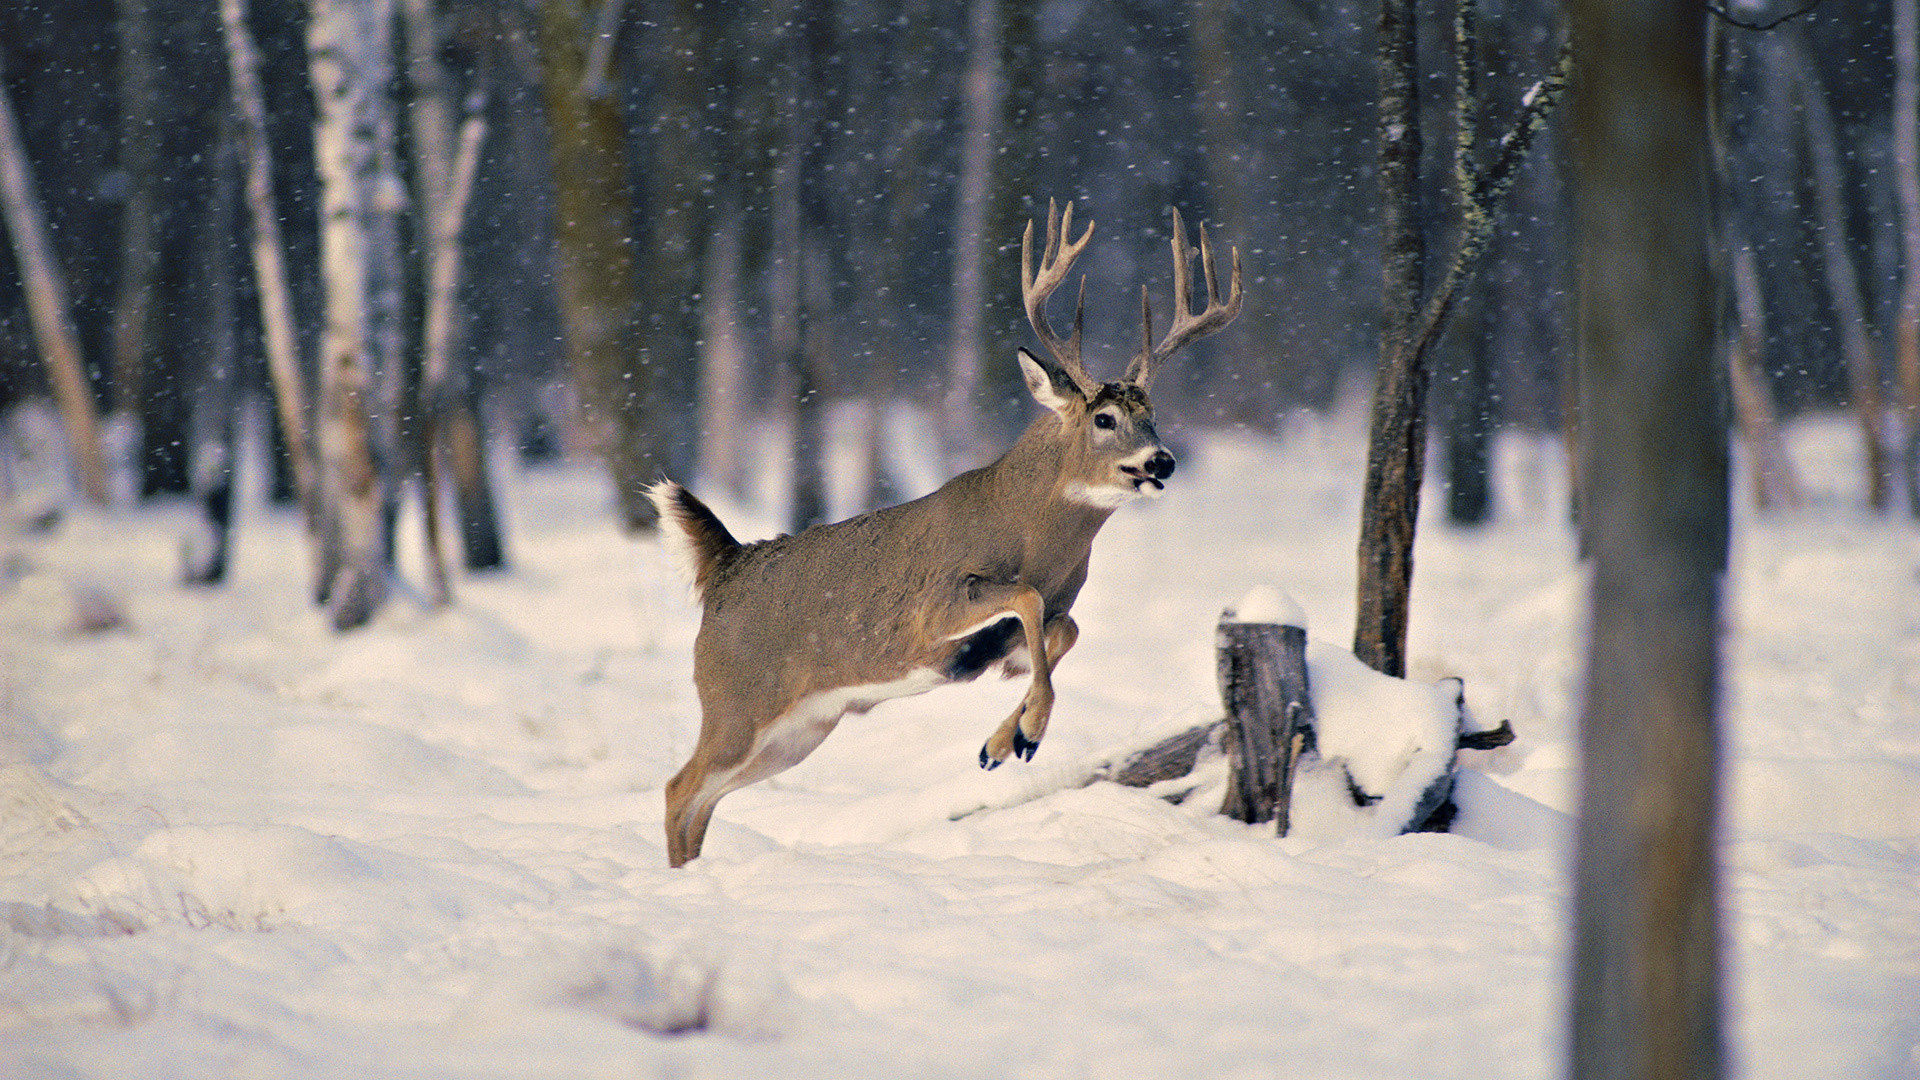 Res: 1920x1080, Pics In High Quality: Winter Deer Wallpaper Backgrounds by Kiana Haak,  03.26.18